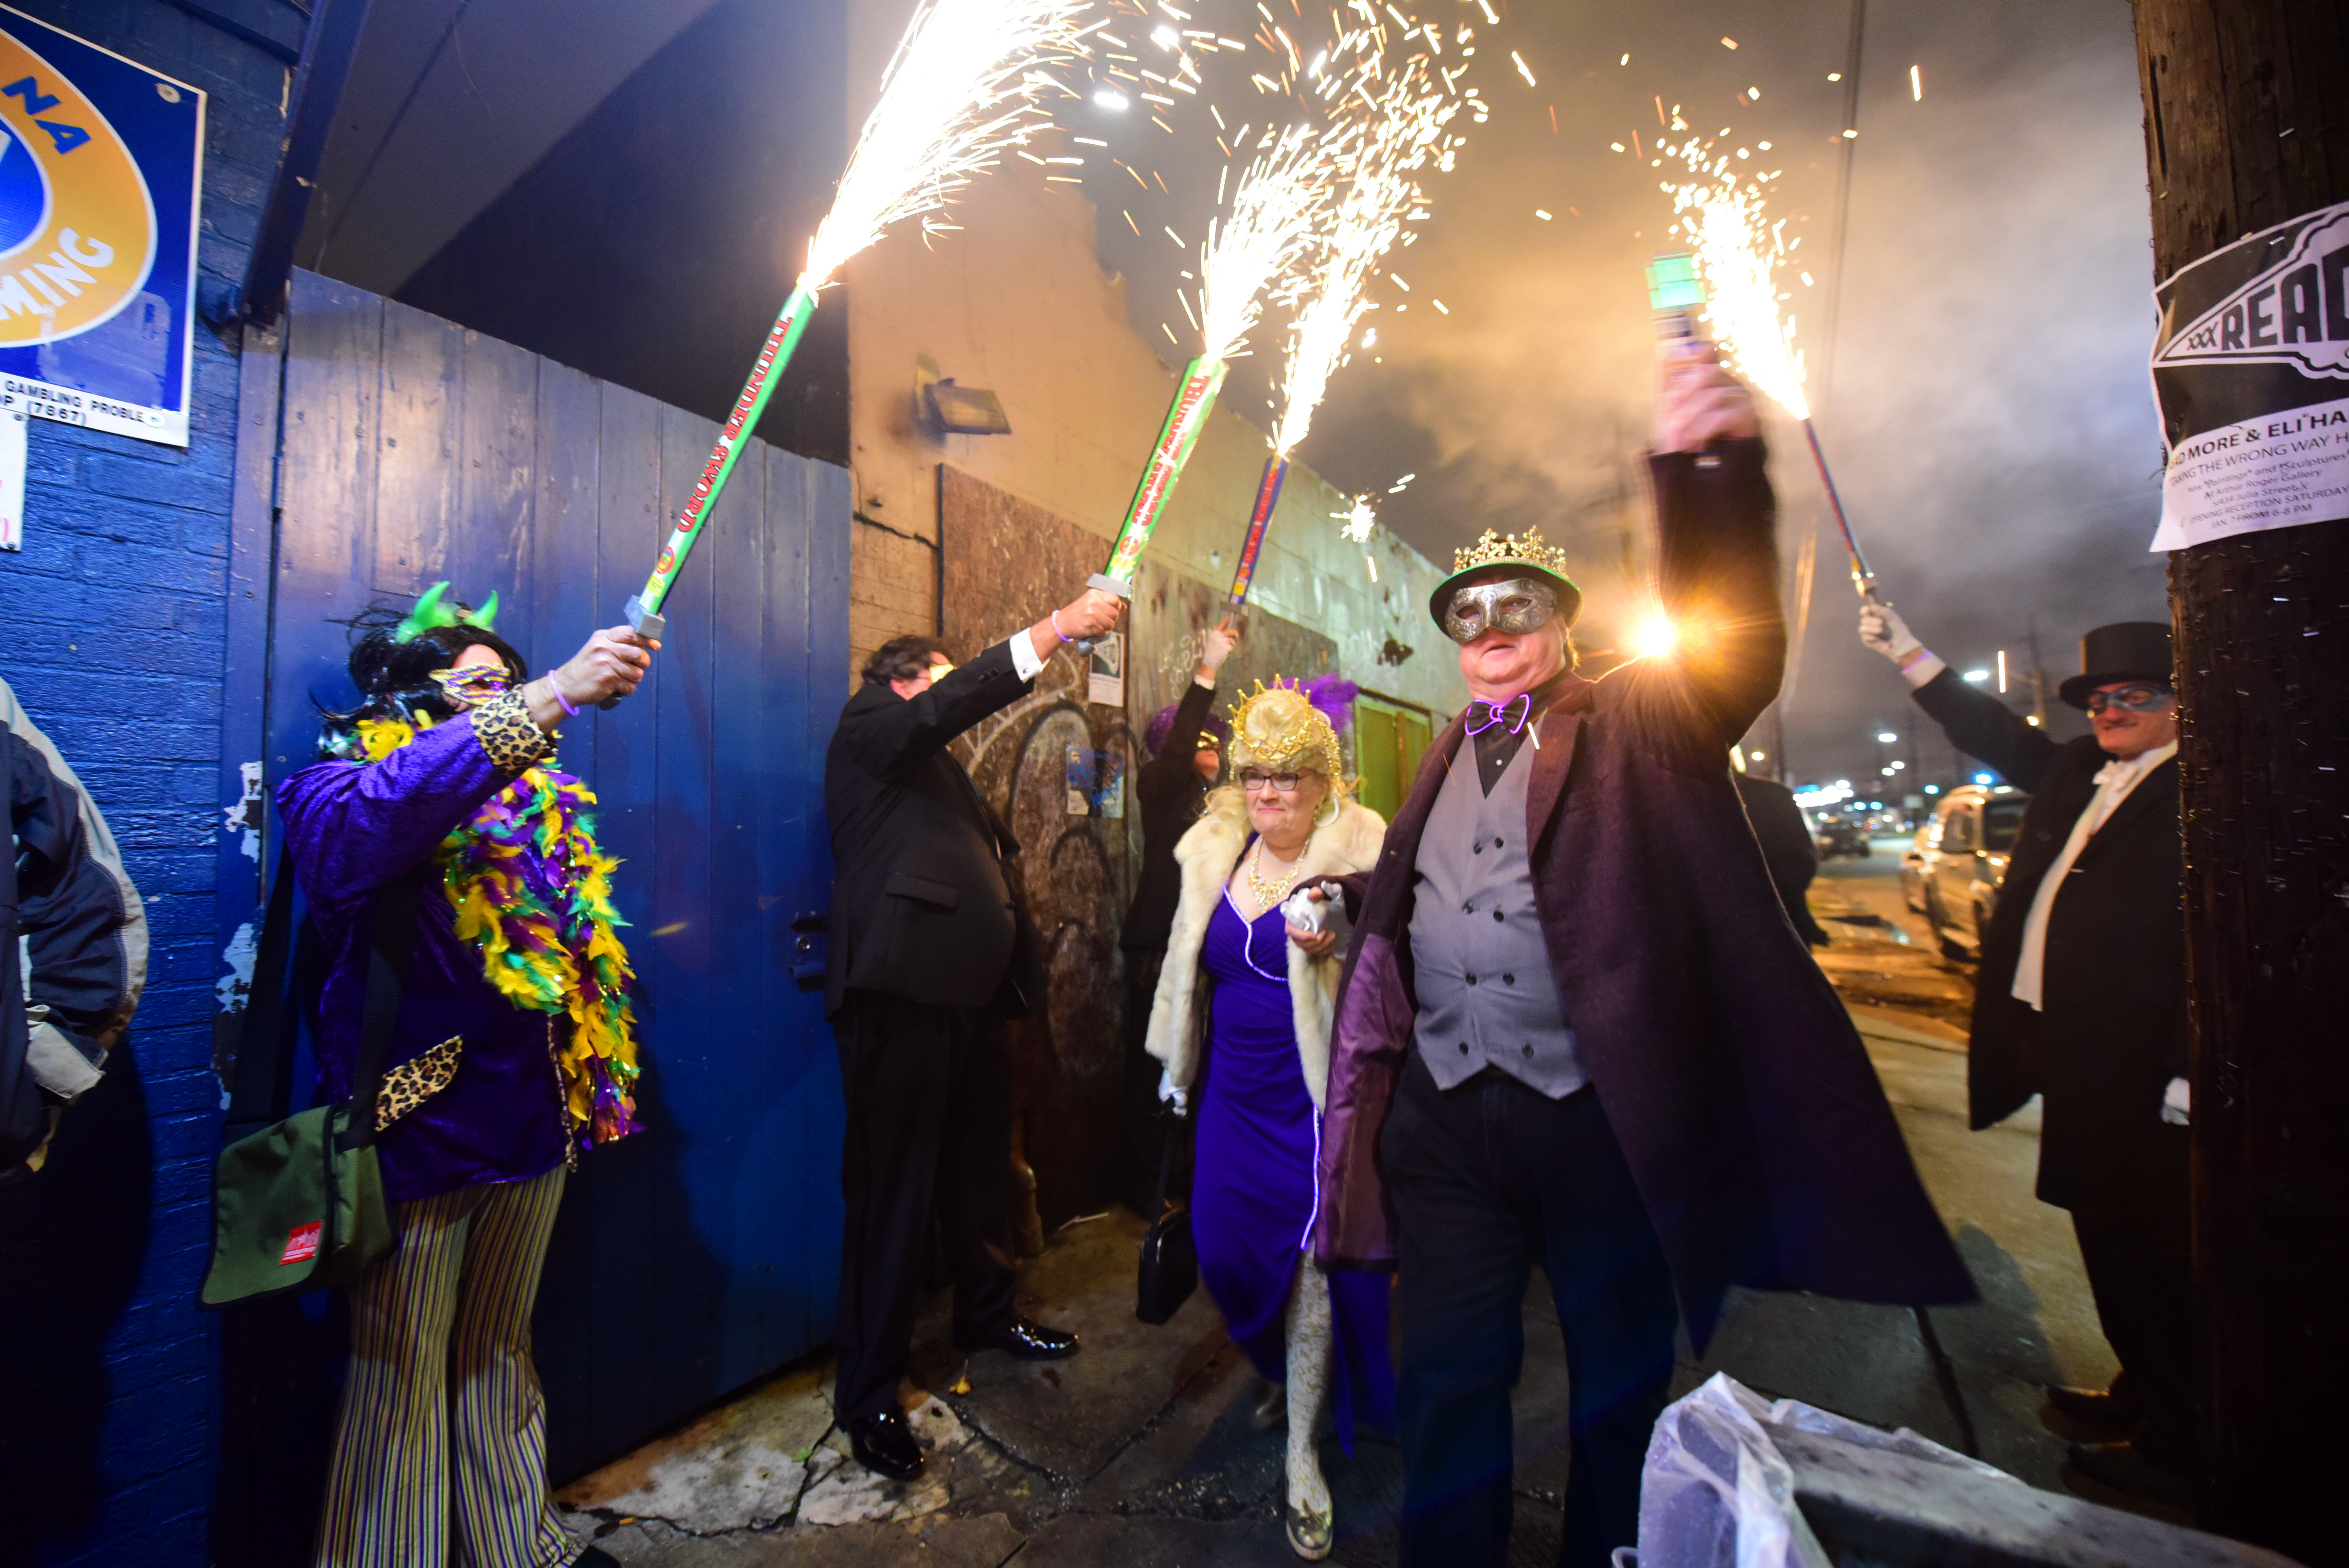 Lakeside 2 Riverside: Upcoming New Orleans Events (NYE & January)